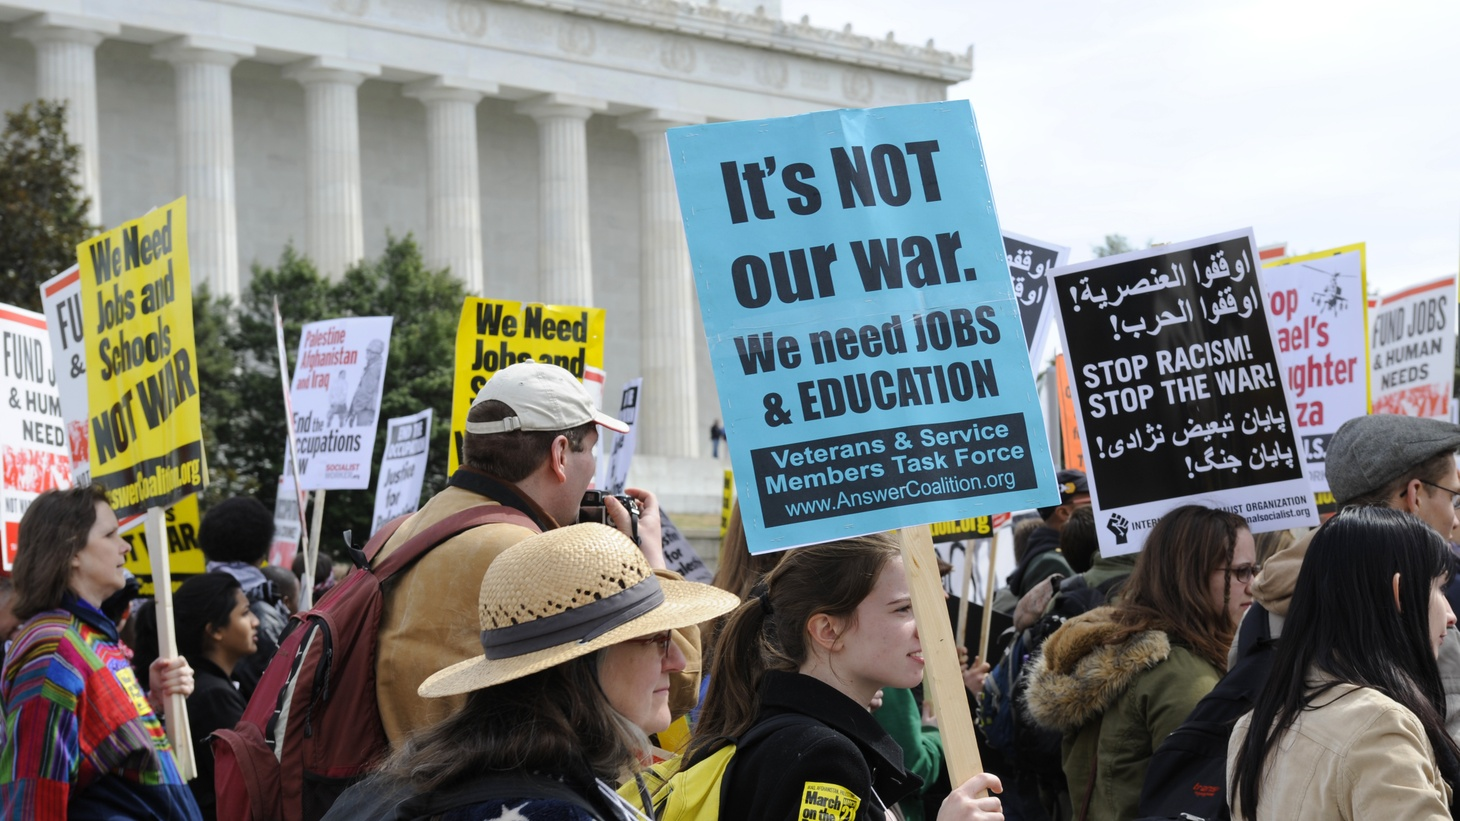 Carrying signs, protesters head to the Pentagon as part of an anti-war march and rally in Washington, D.C., March 21, 2009.